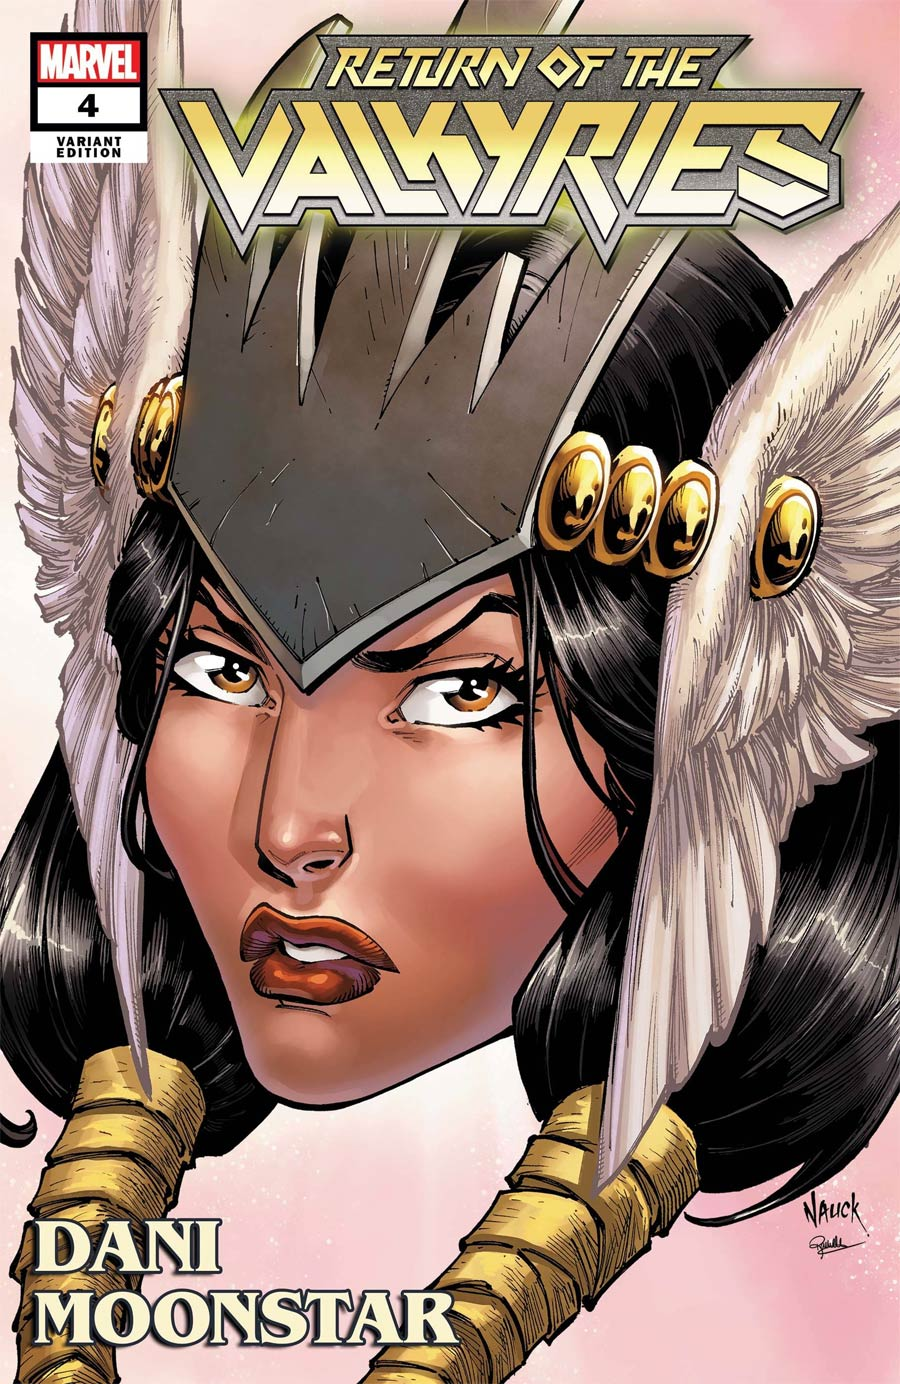 King In Black Return Of The Valkyries #4 Cover C Variant Todd Nauck Headshot Cover